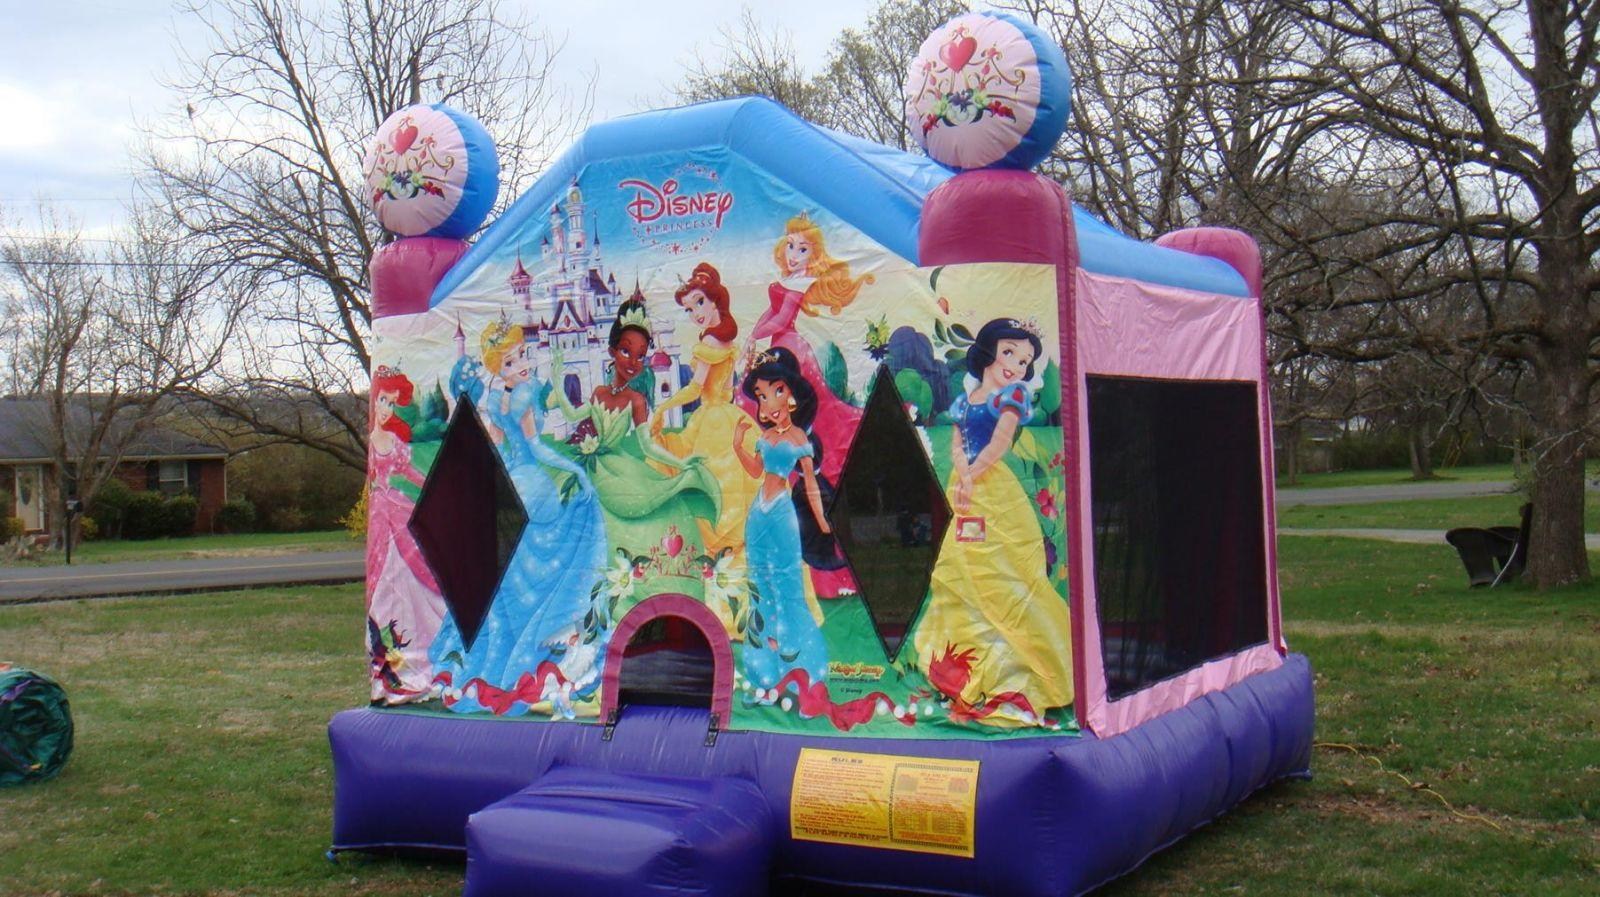 Disney princess bounce house for rent Nashville TN Jumping Hearts ParTy Rentals